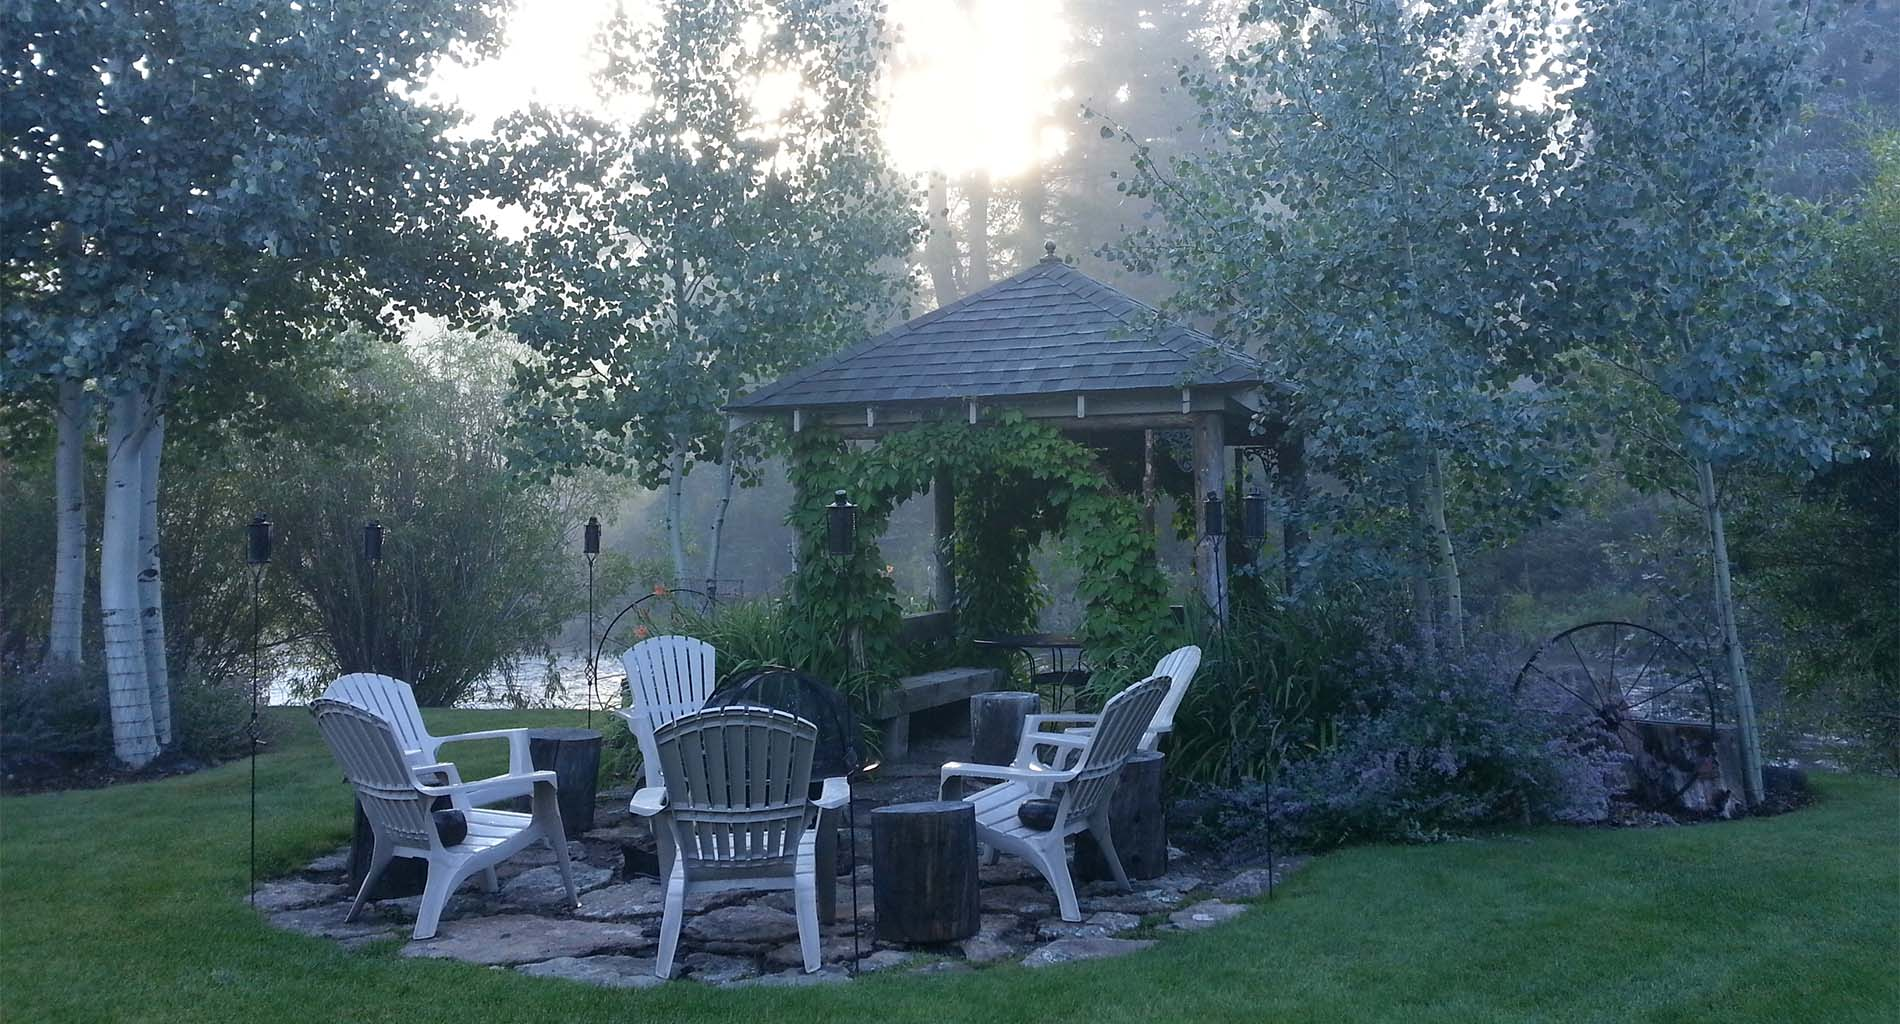 Log arbor, green vines, purple flowers and Adirondack chairs around a fire pit in an early morning, foggy atmosphere